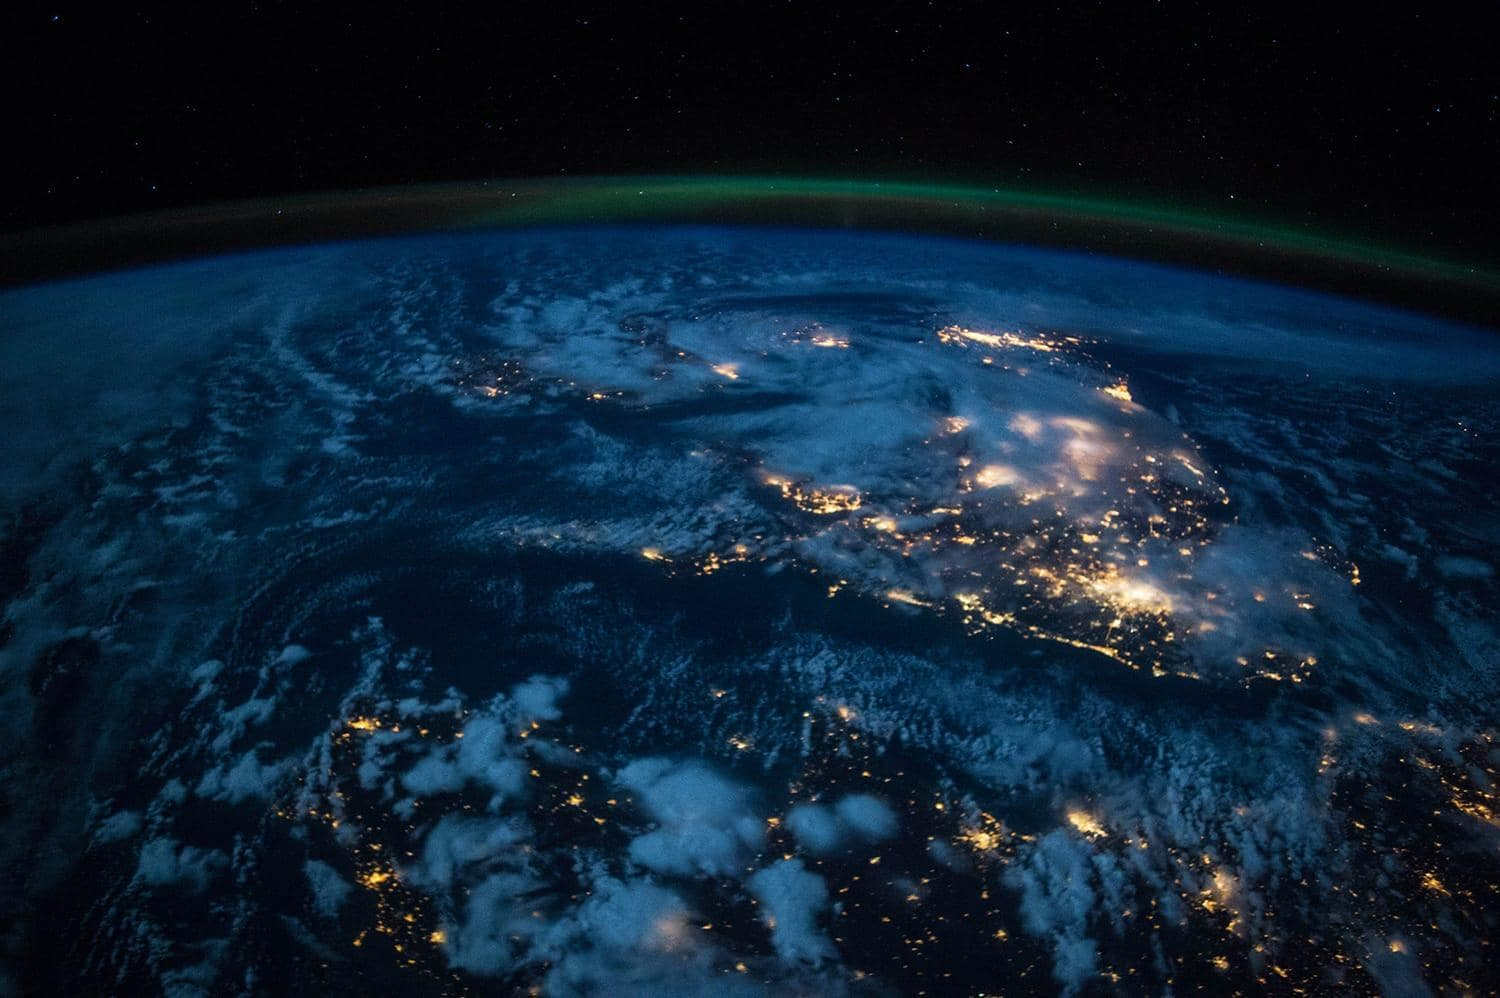 International space station view of Earth